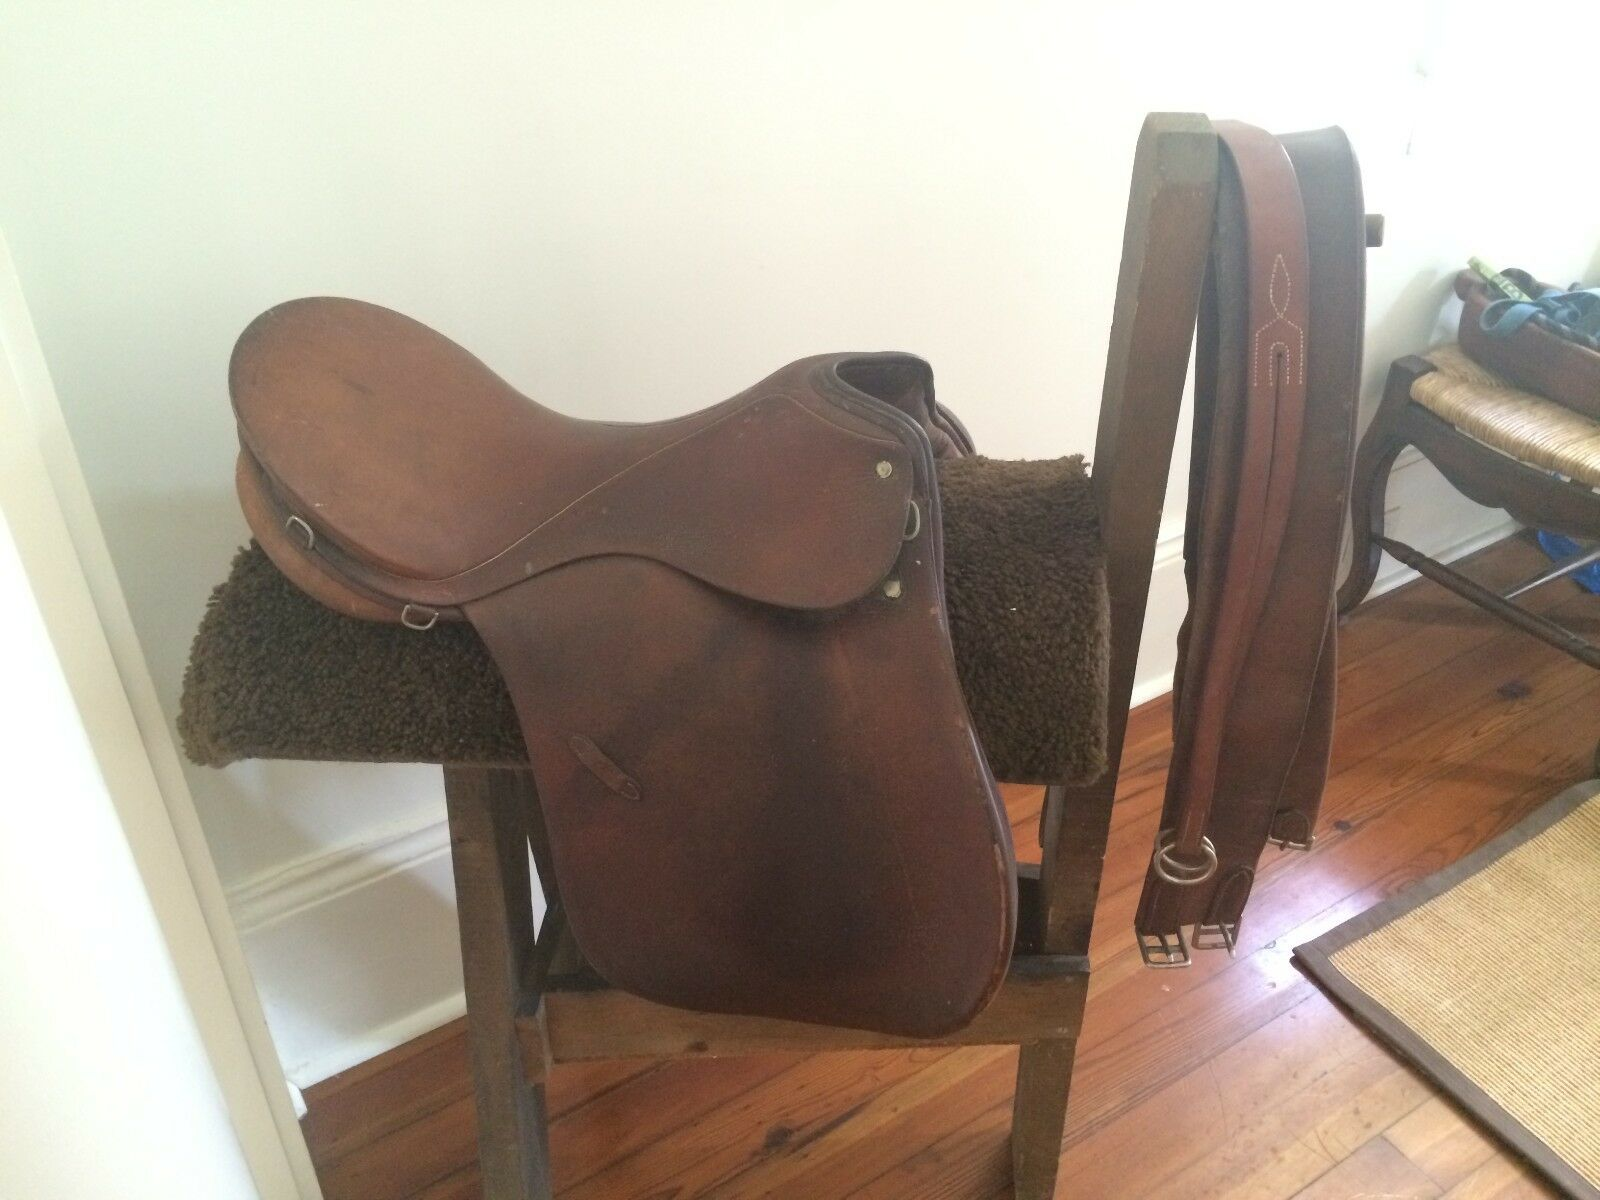 Vintage Saddle Caddy with Leather G. Passier & Sohn Leather Saddle & Straps